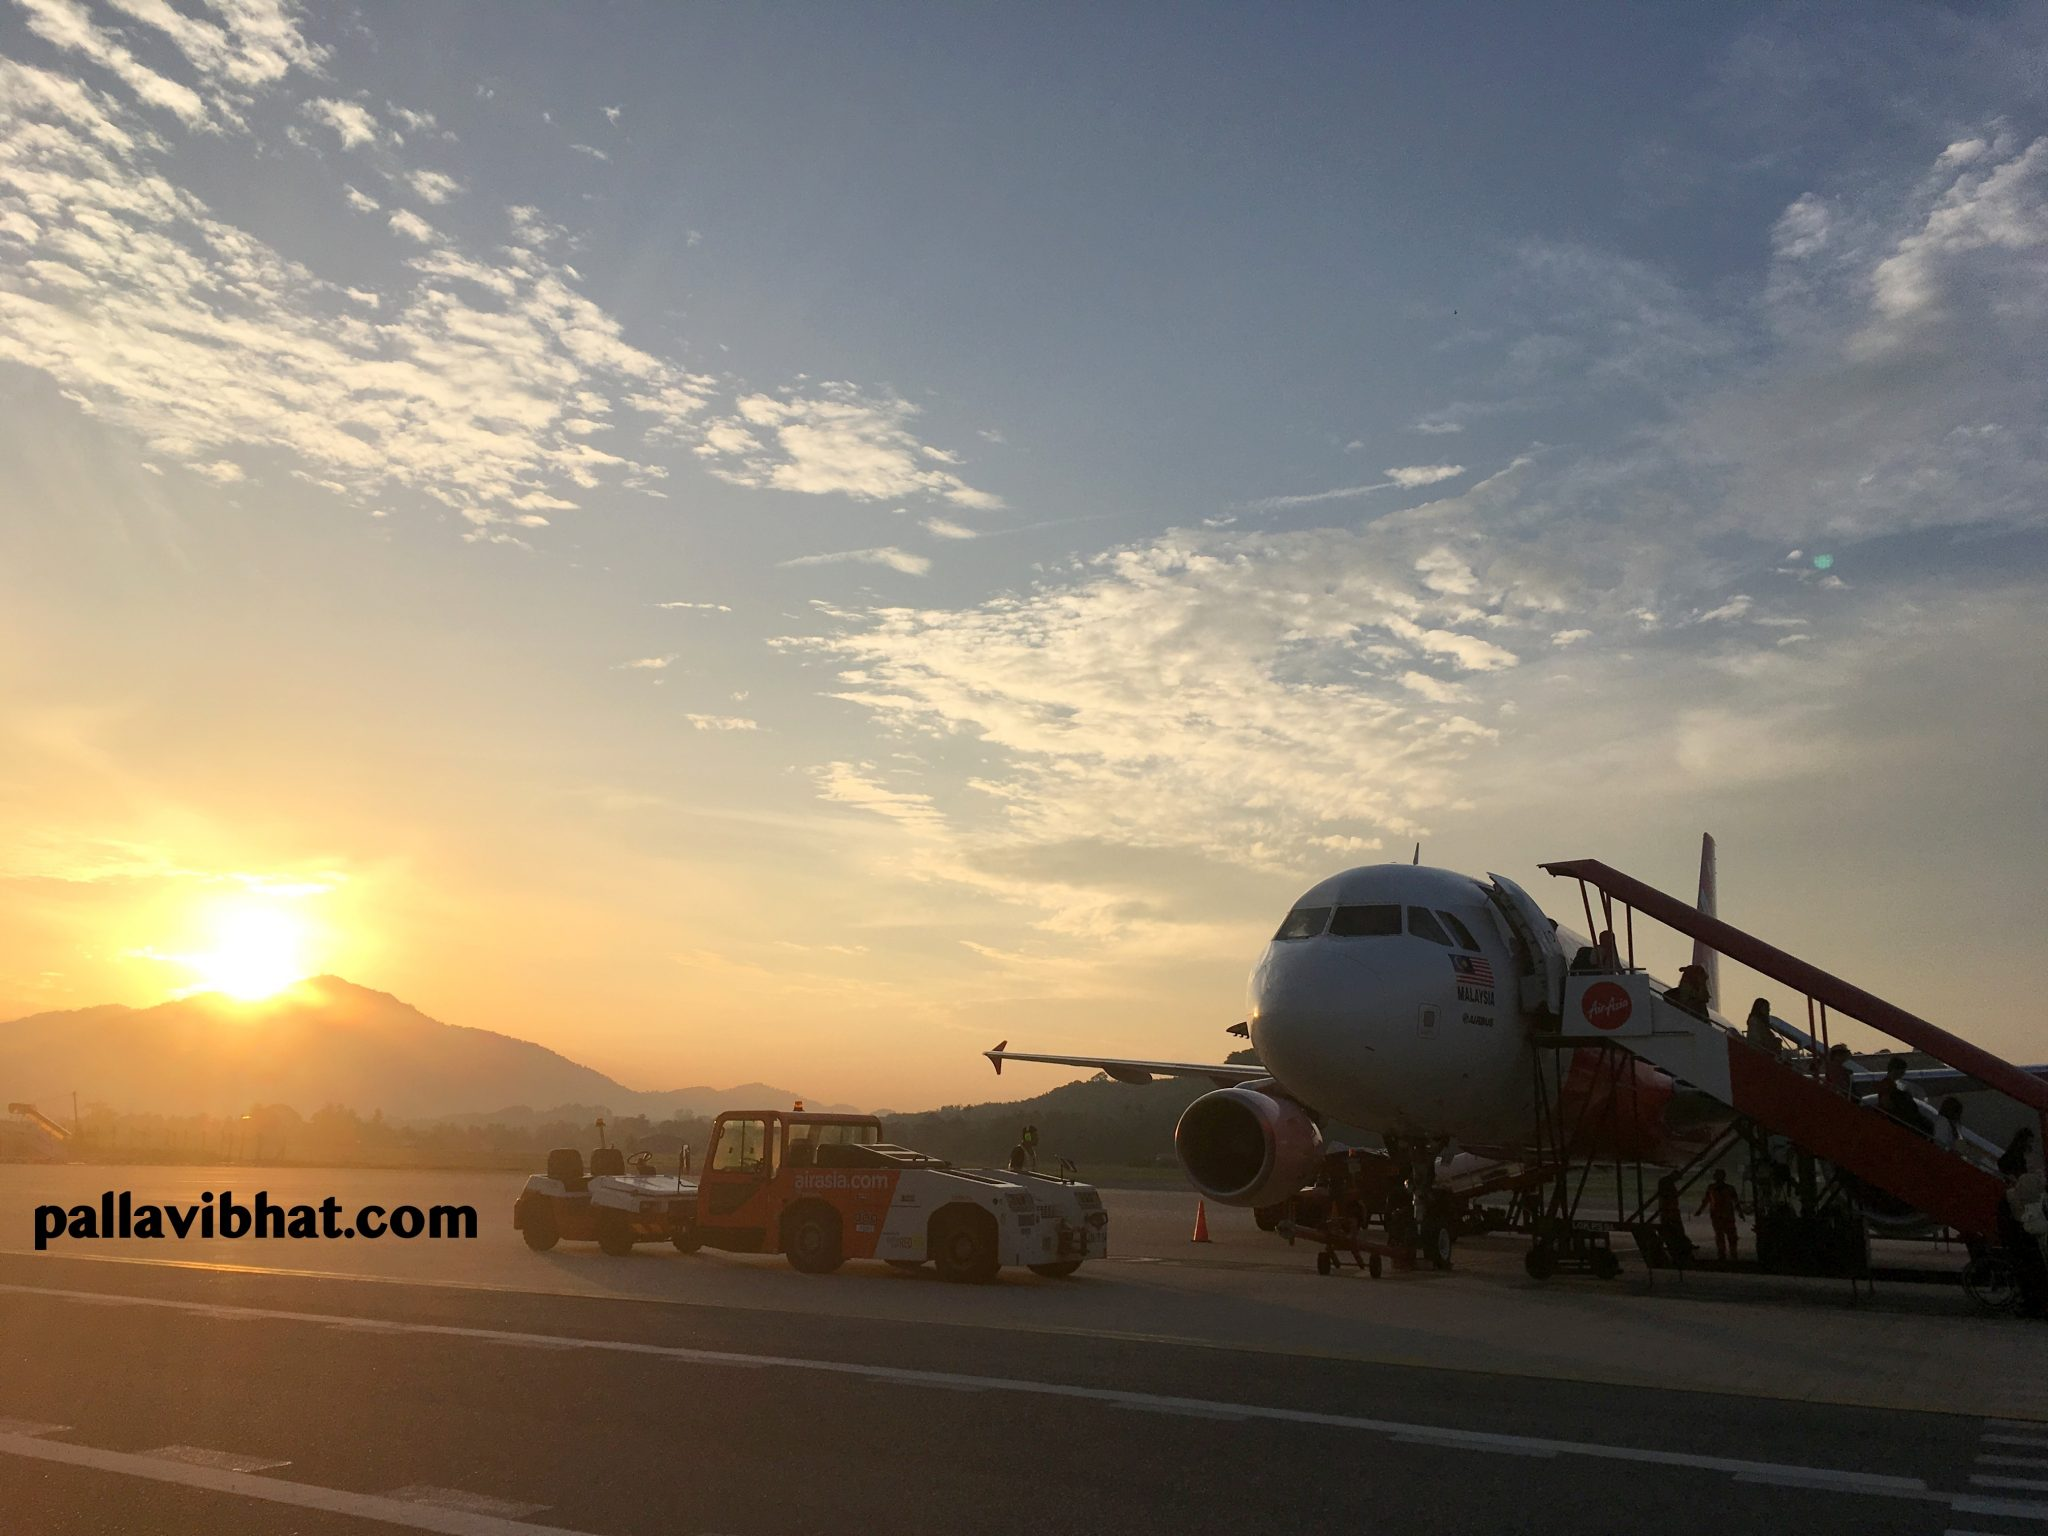 Sunrise at Langkawi Airport